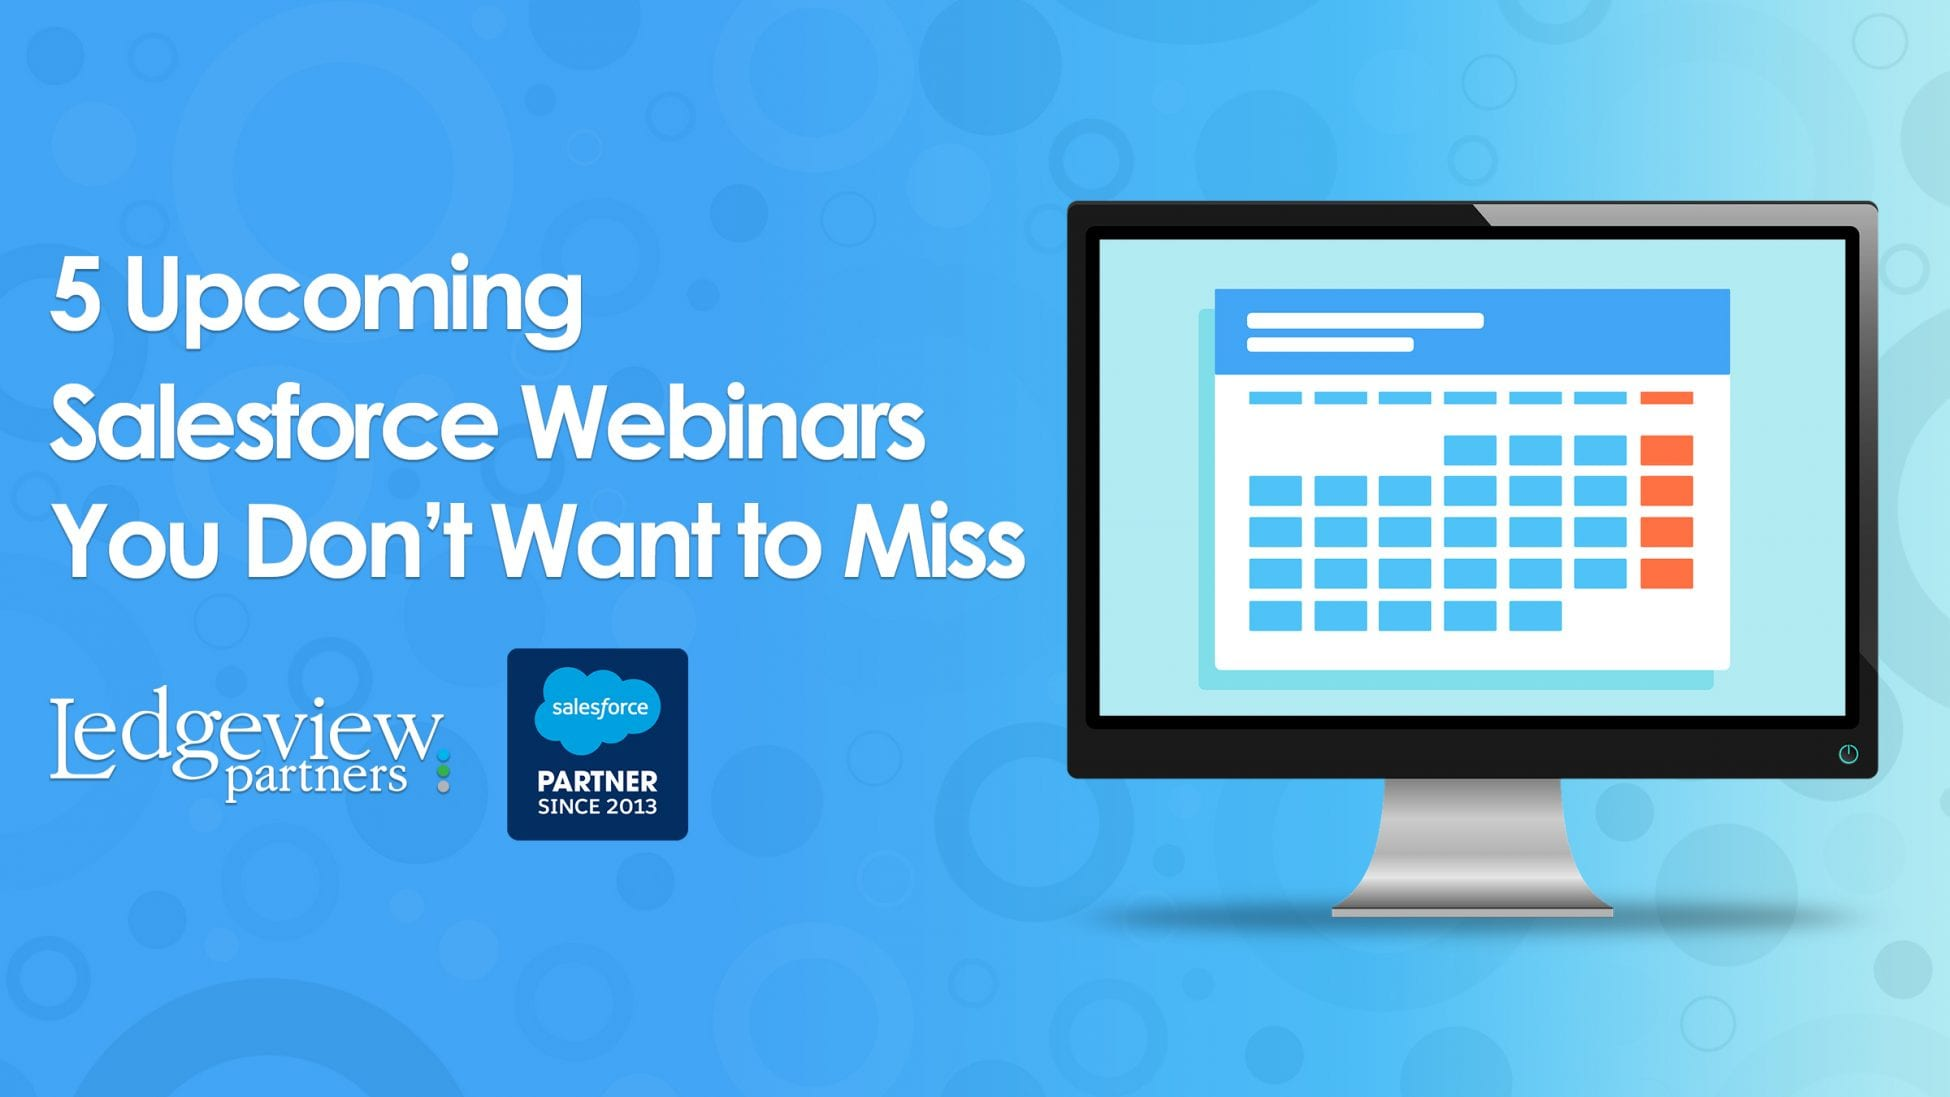 Upcoming Salesforce Webinars